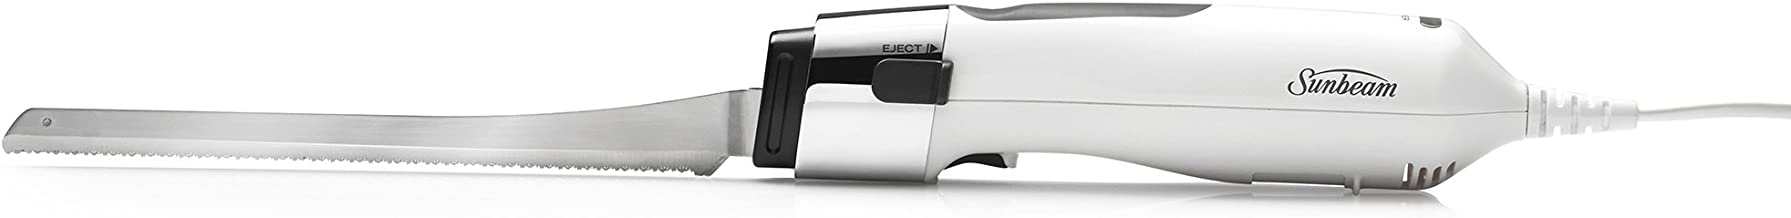 Sunbeam Carveasy Twin Blade Electric Knife, White